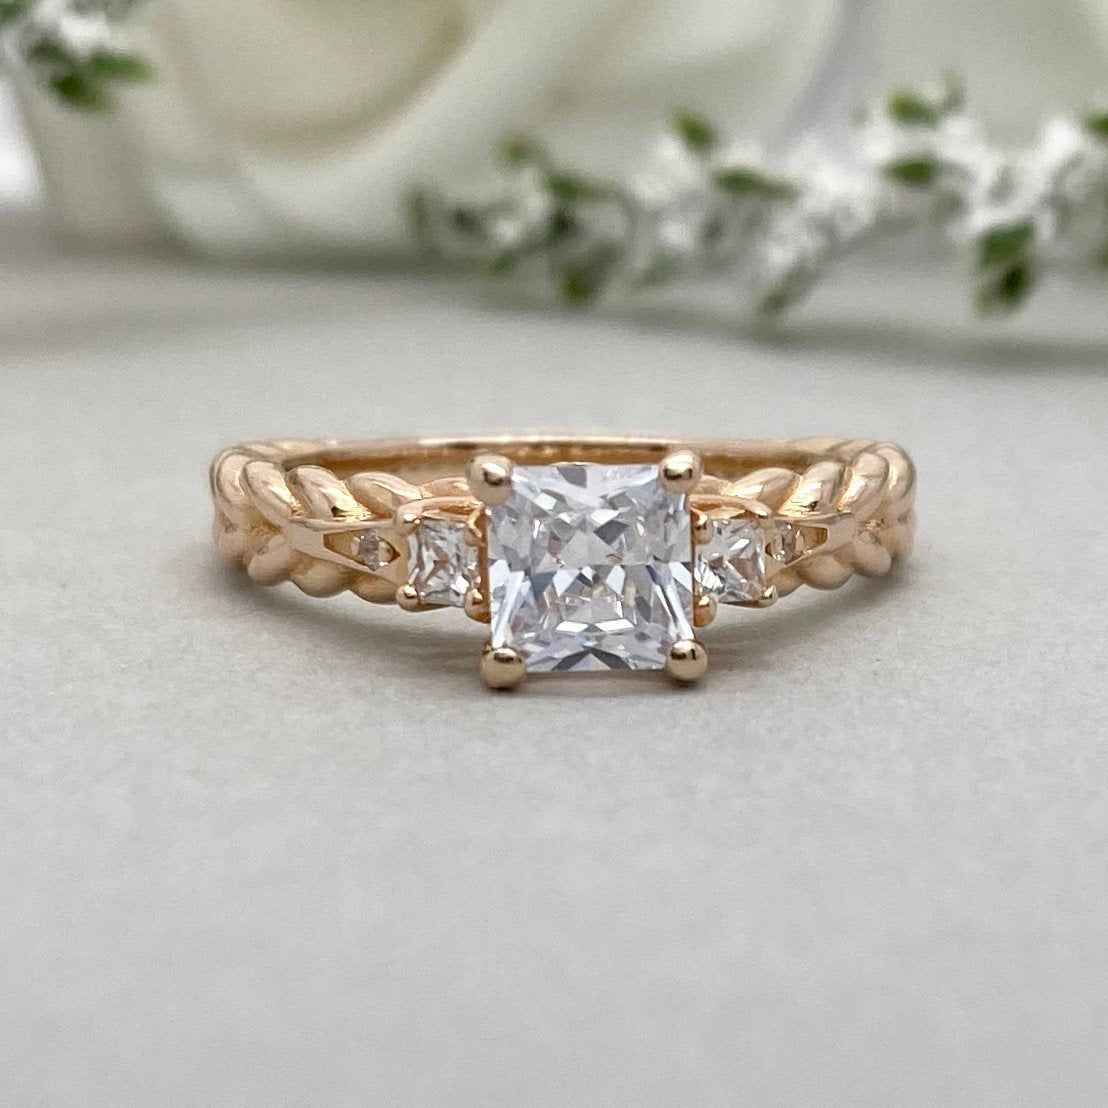 Sterling Silver Simulated Oval Cut Diamond Halo Engagement Ring with Side Stones Promise Bridal Ring